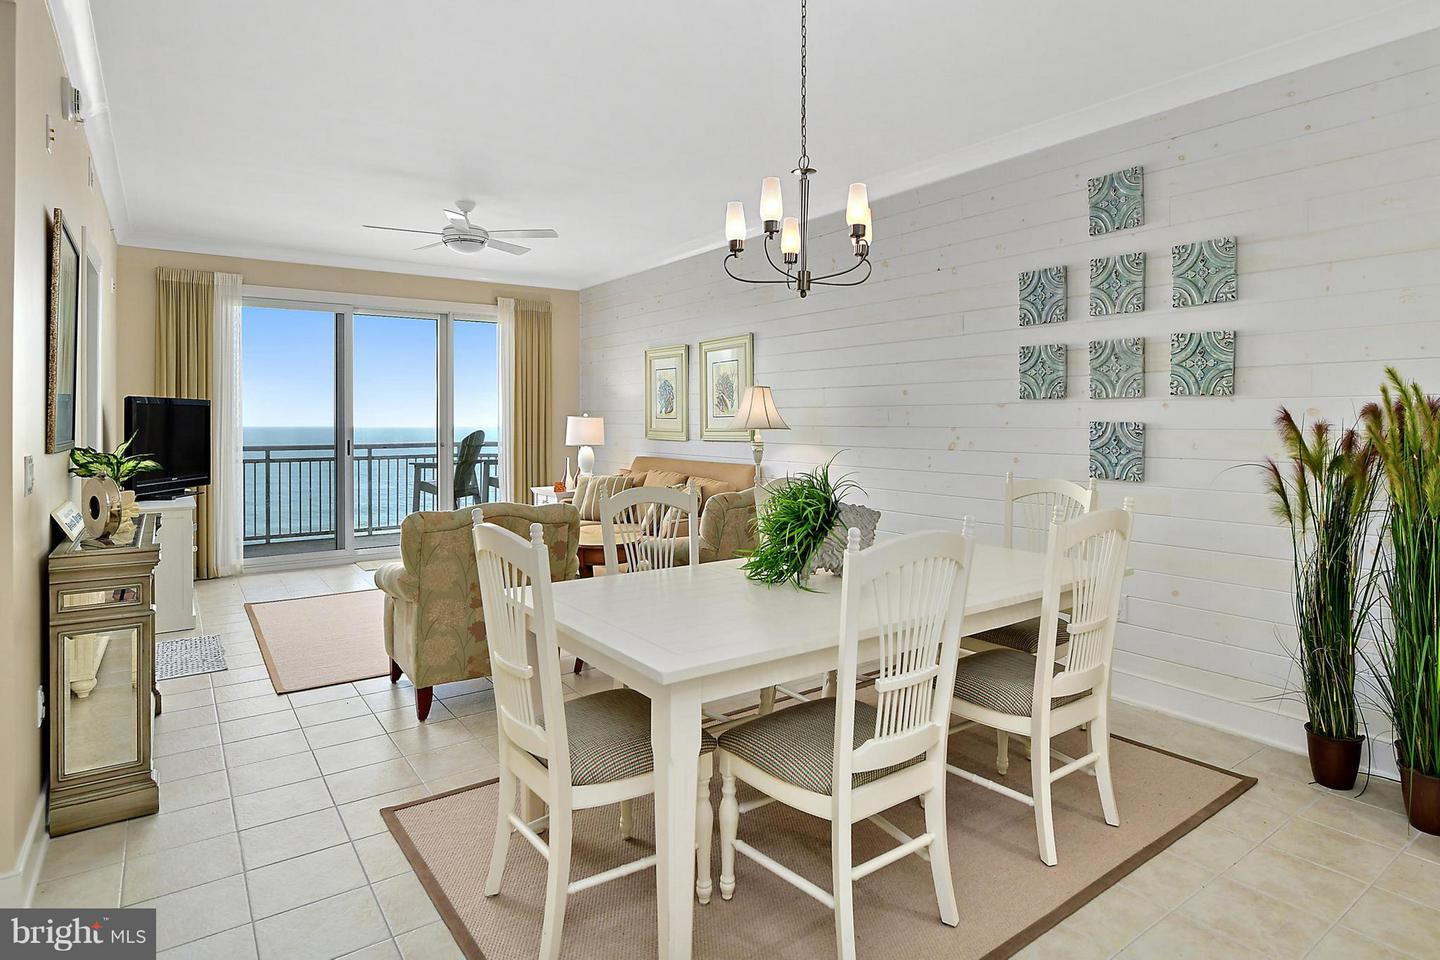 Additional photo for property listing at 2 48th St #1610 2 48th St #1610 Ocean City, Maryland 21842 United States